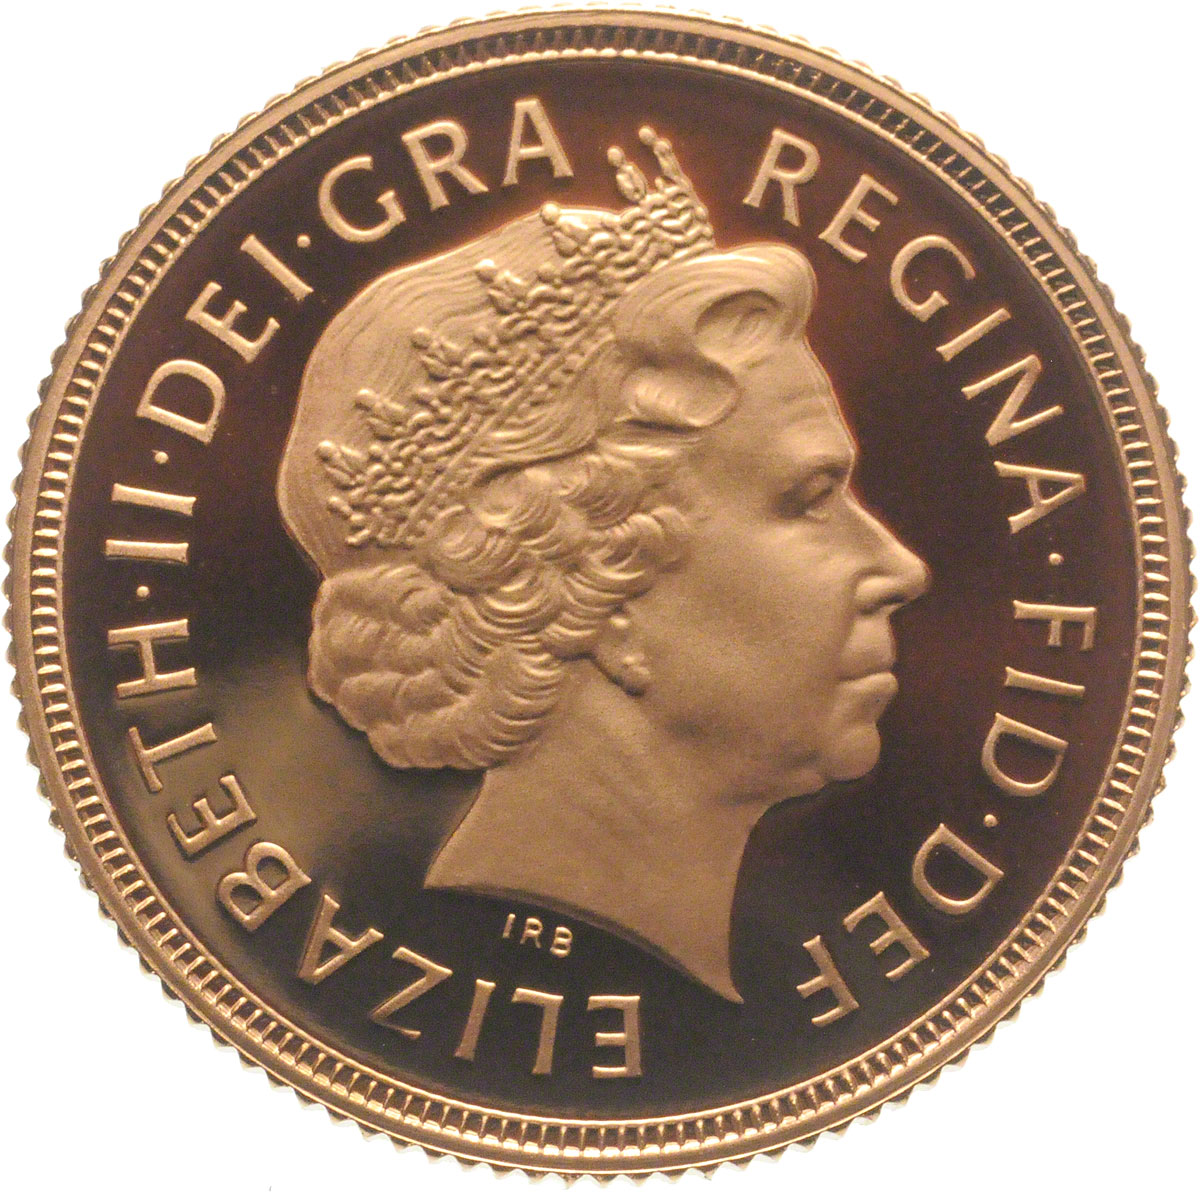 Obverse Face of a 2002-Gold-Sovereign